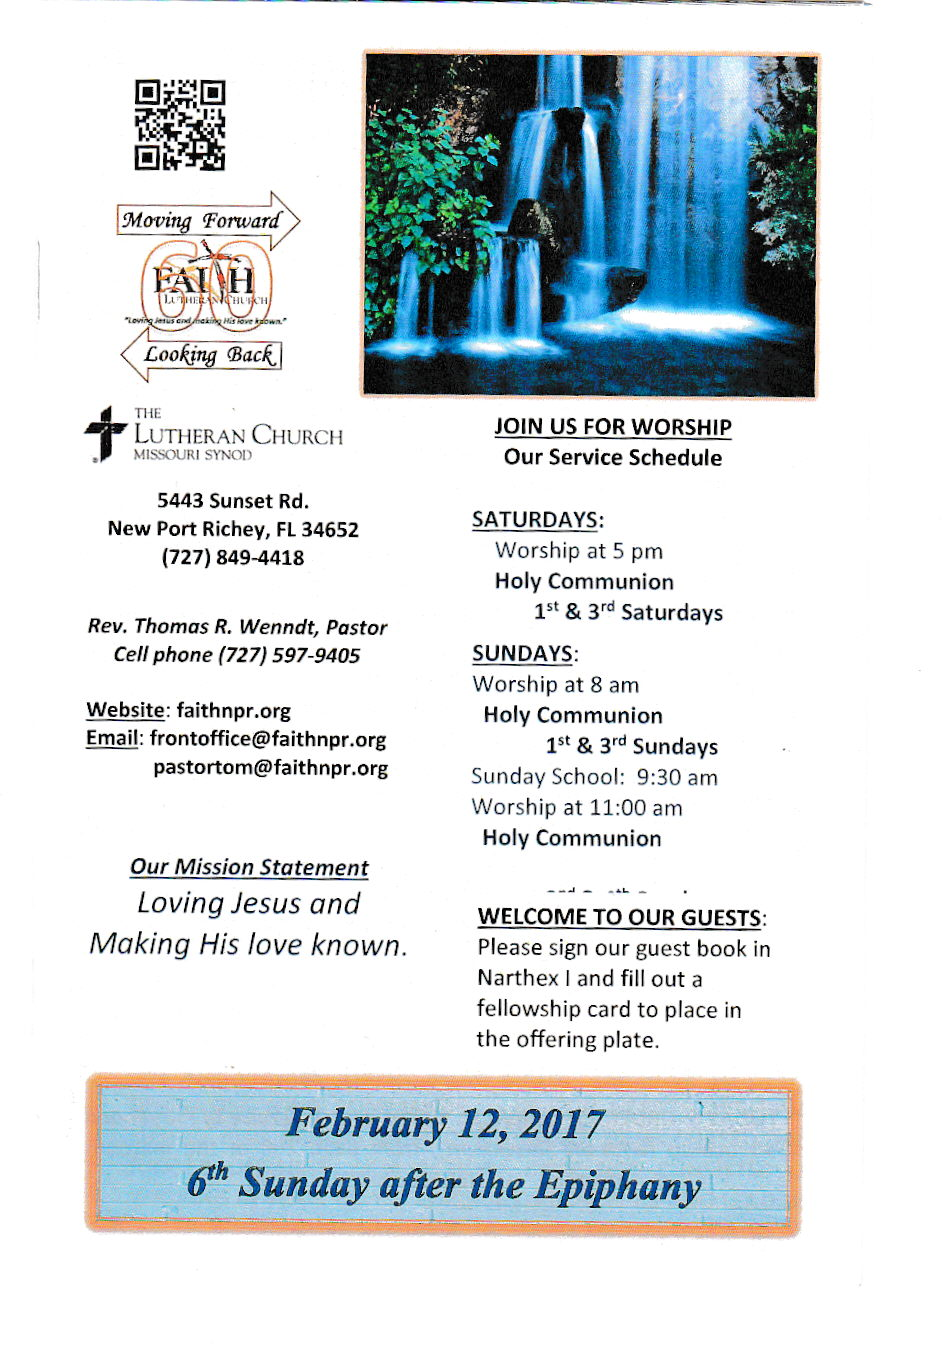 church bulletin february 12th 2017 6th sunday after epiphany